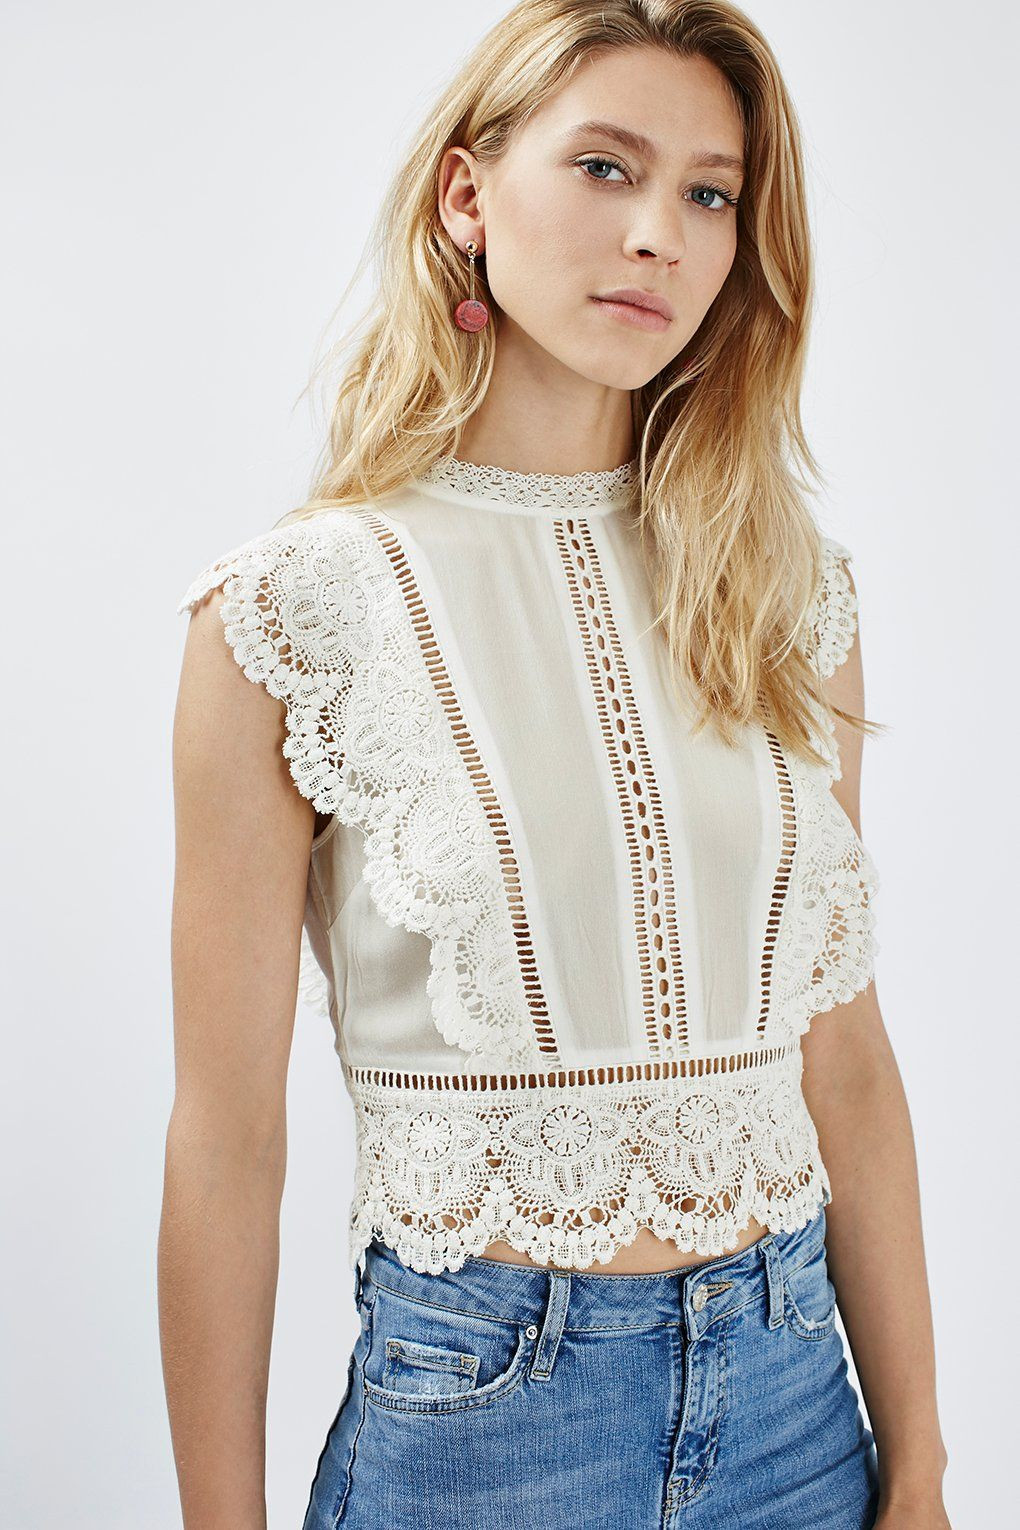 Crochet top Unique Sleeveless Crochet Blouse tops Clothing topshop Of Delightful 48 Pics Crochet top